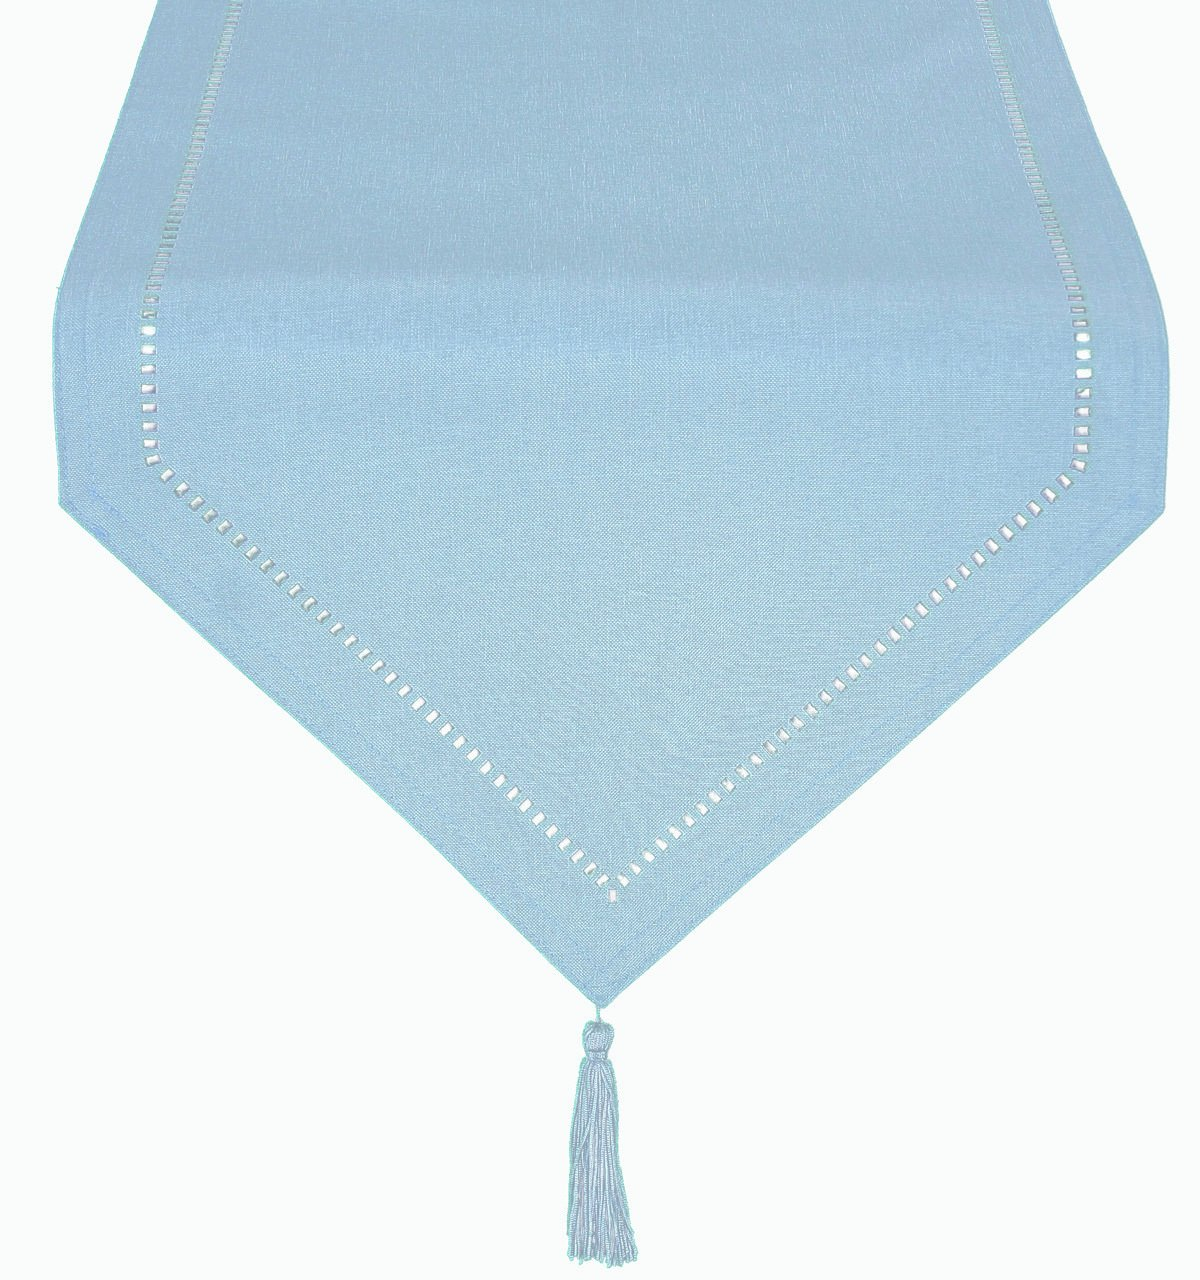 Xia Home Fashions Melrose Easy Care Cutwork Hemstitch 16 by 72-Inch Table Runner with Tassel, Teal by Xia Home Fashions